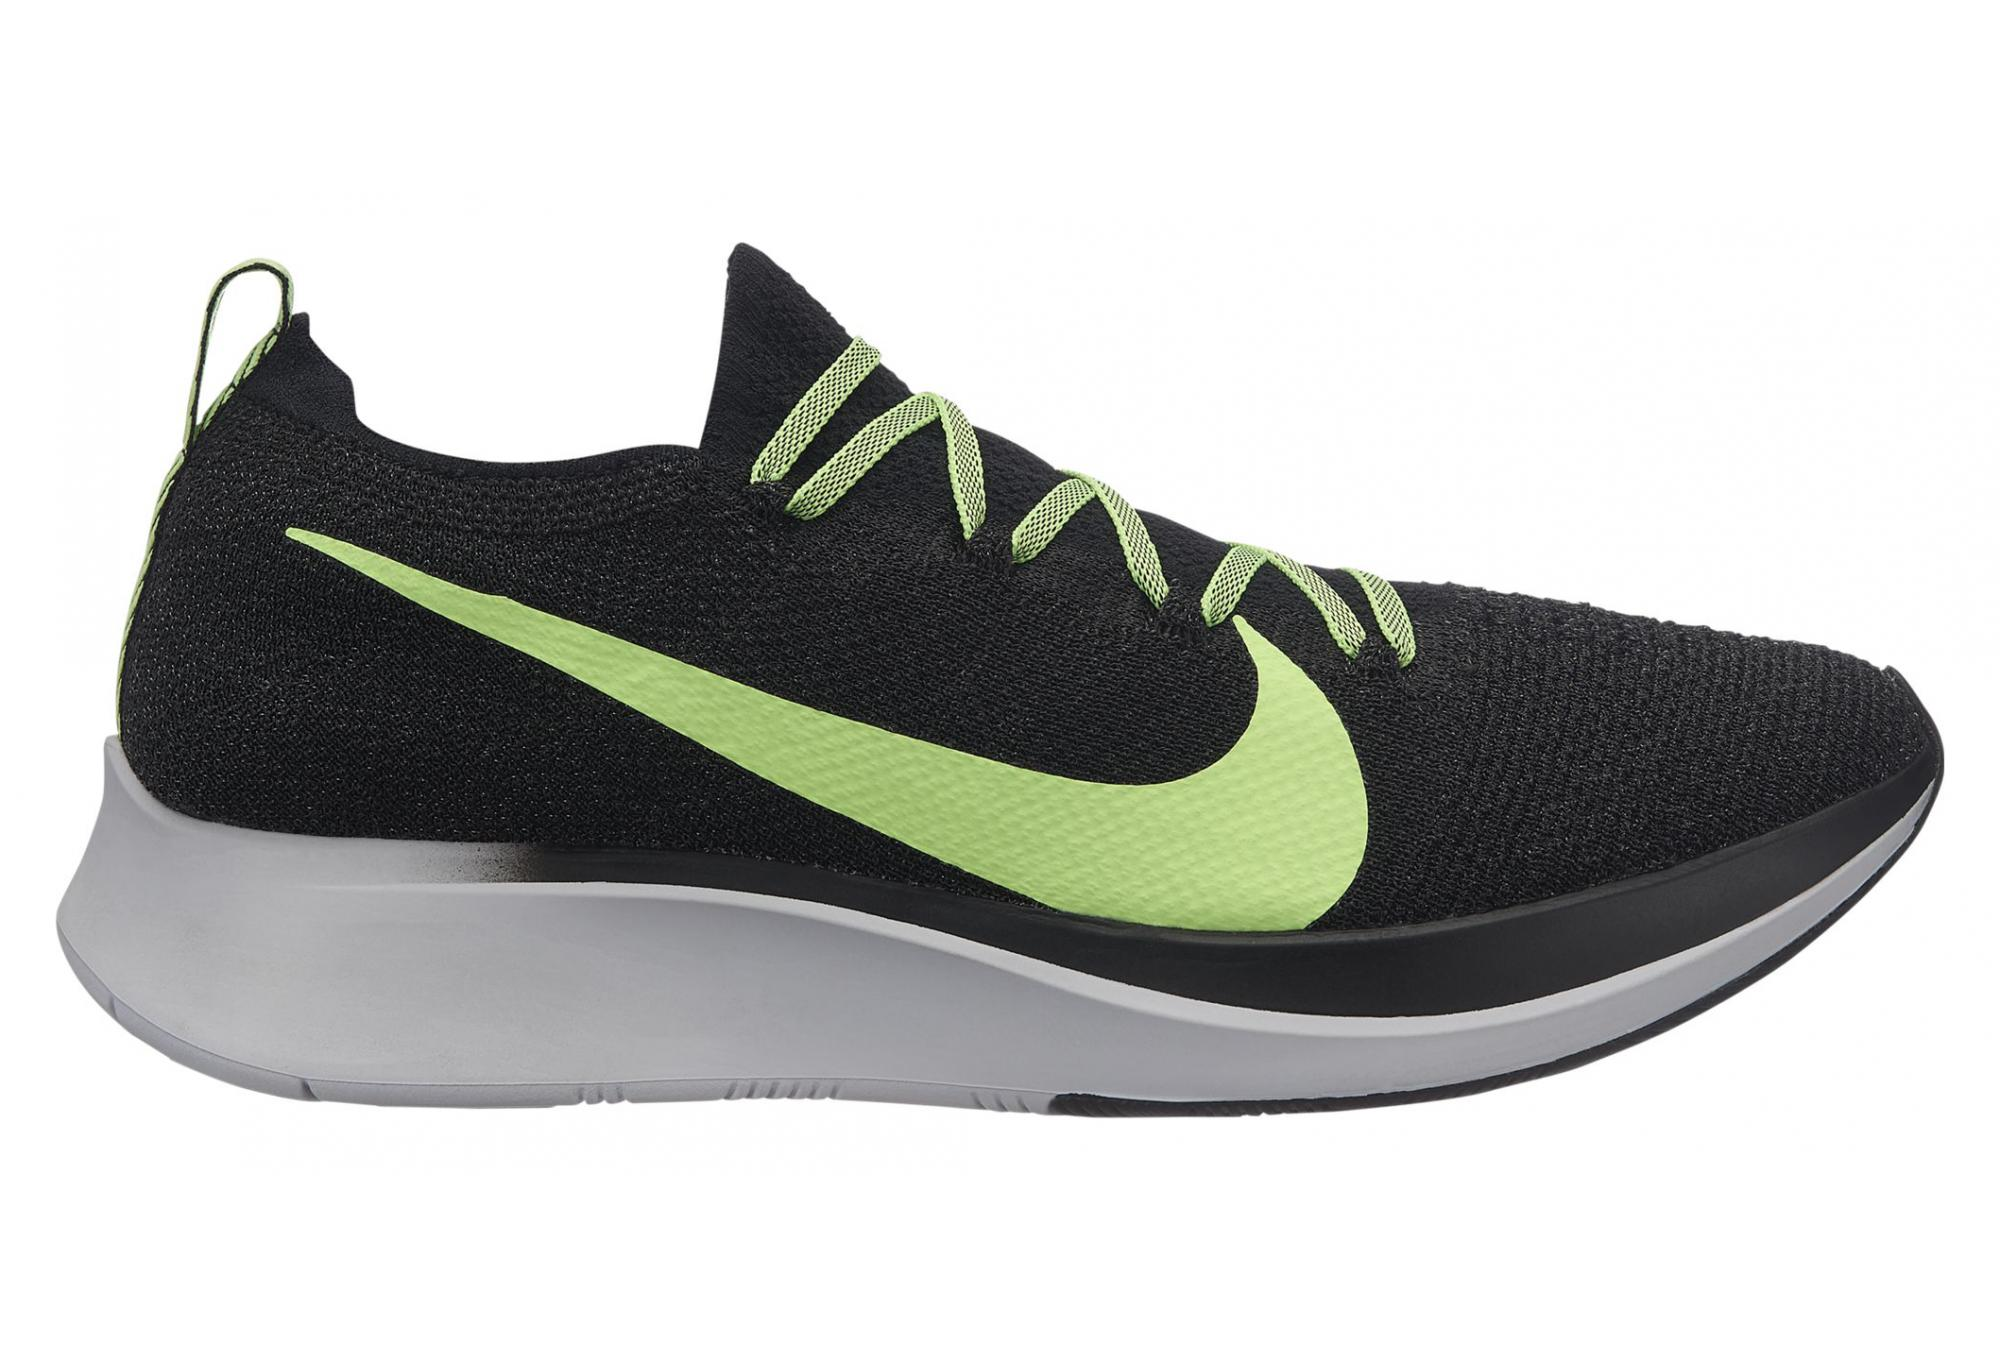 Apariencia Merecer Napier  Nike Zoom Fly Flyknit Black Green Men | Alltricks.com